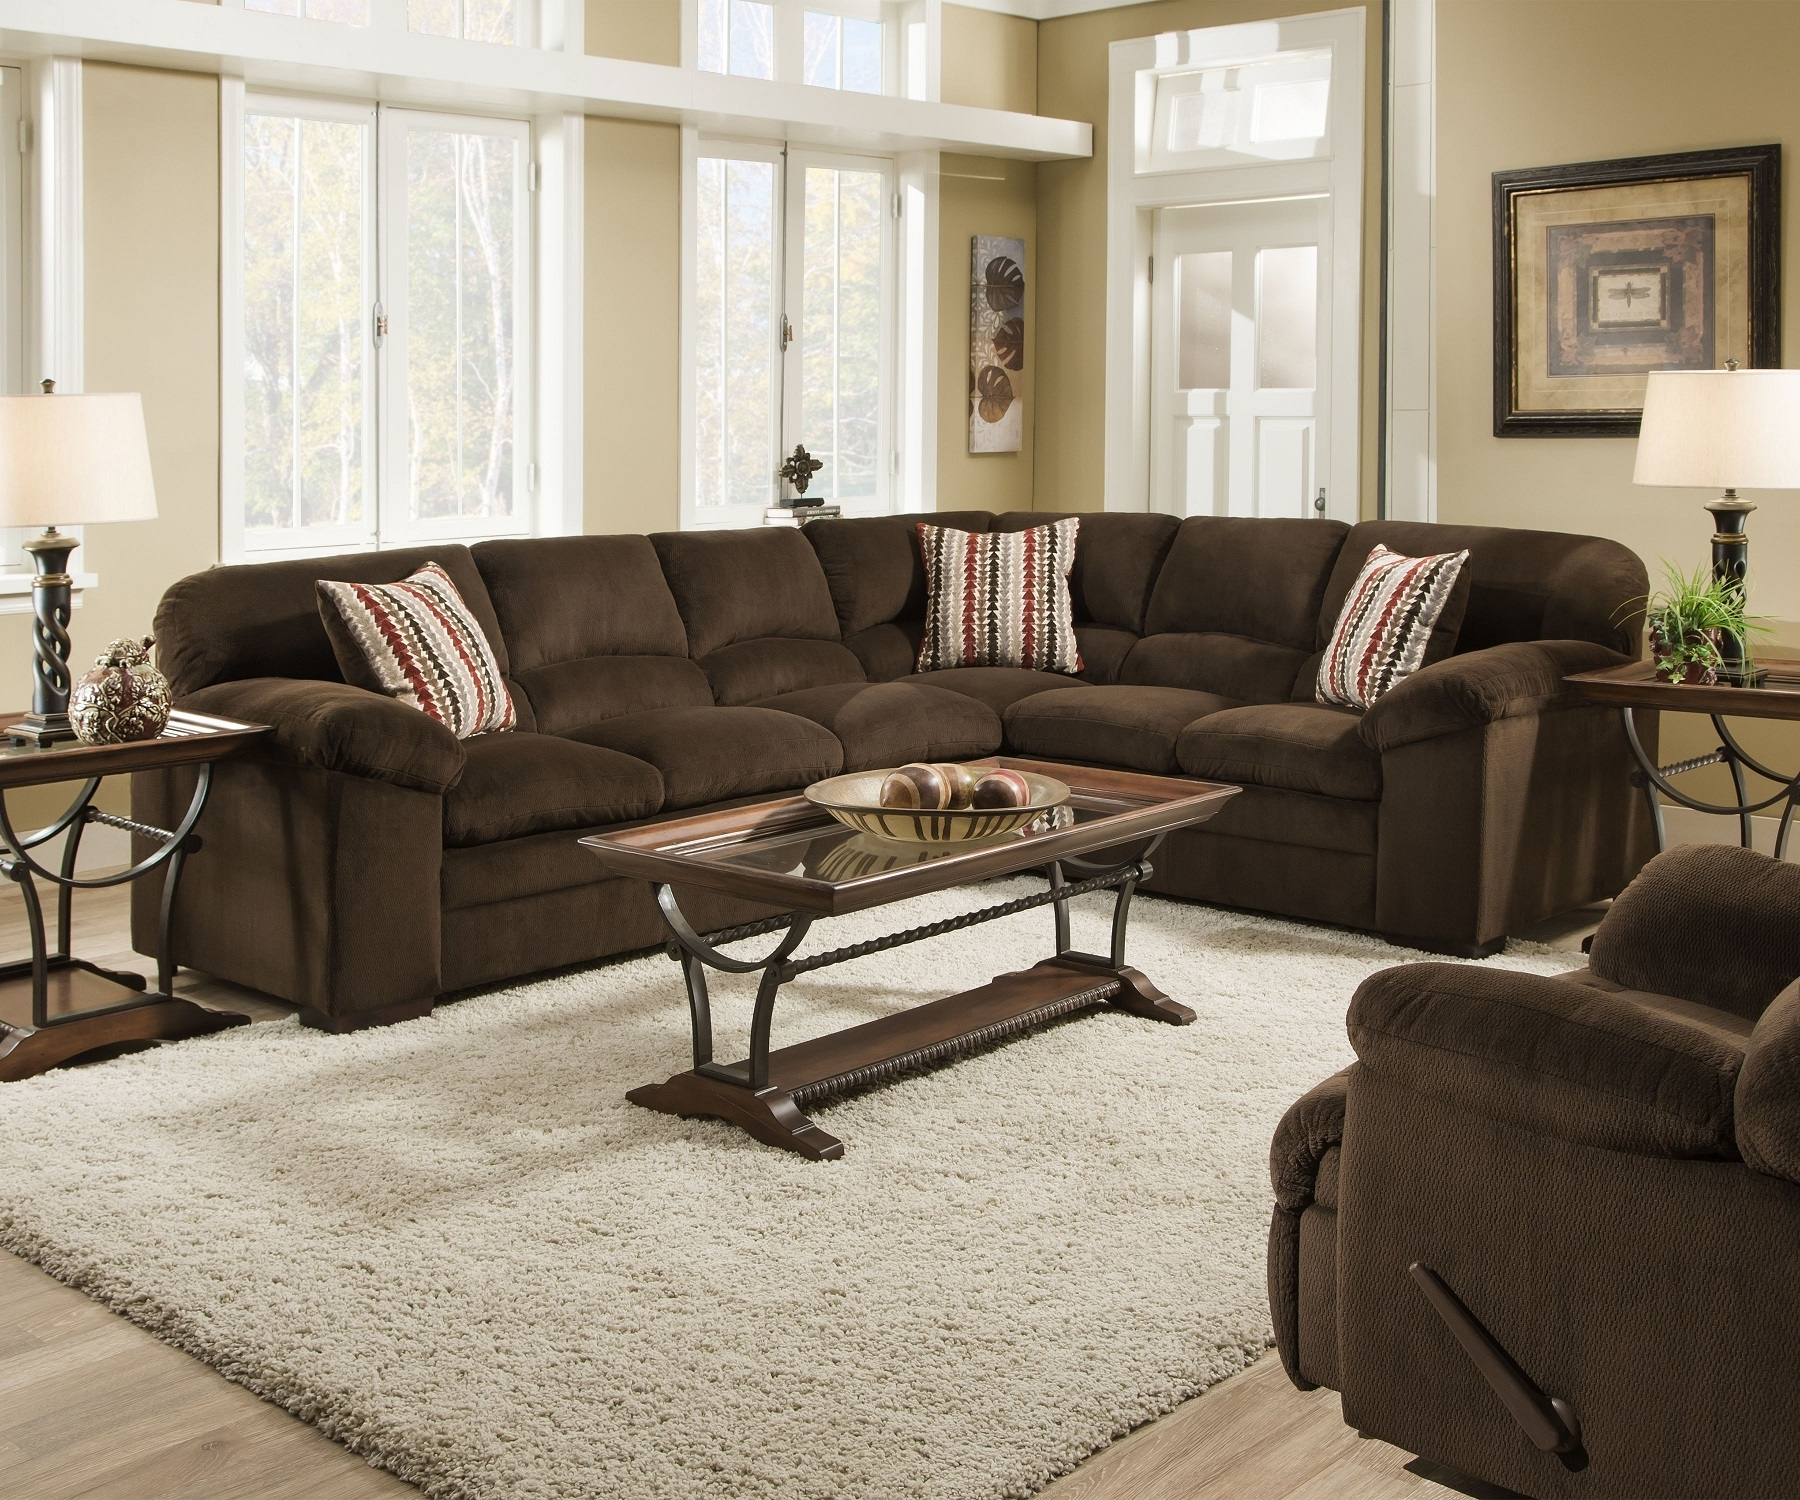 Favorite Chocolate Sectional Sofas For Simmons Dover 8043 Chocolate Ultra Plush Soft Seating Made In The Usa (View 6 of 15)